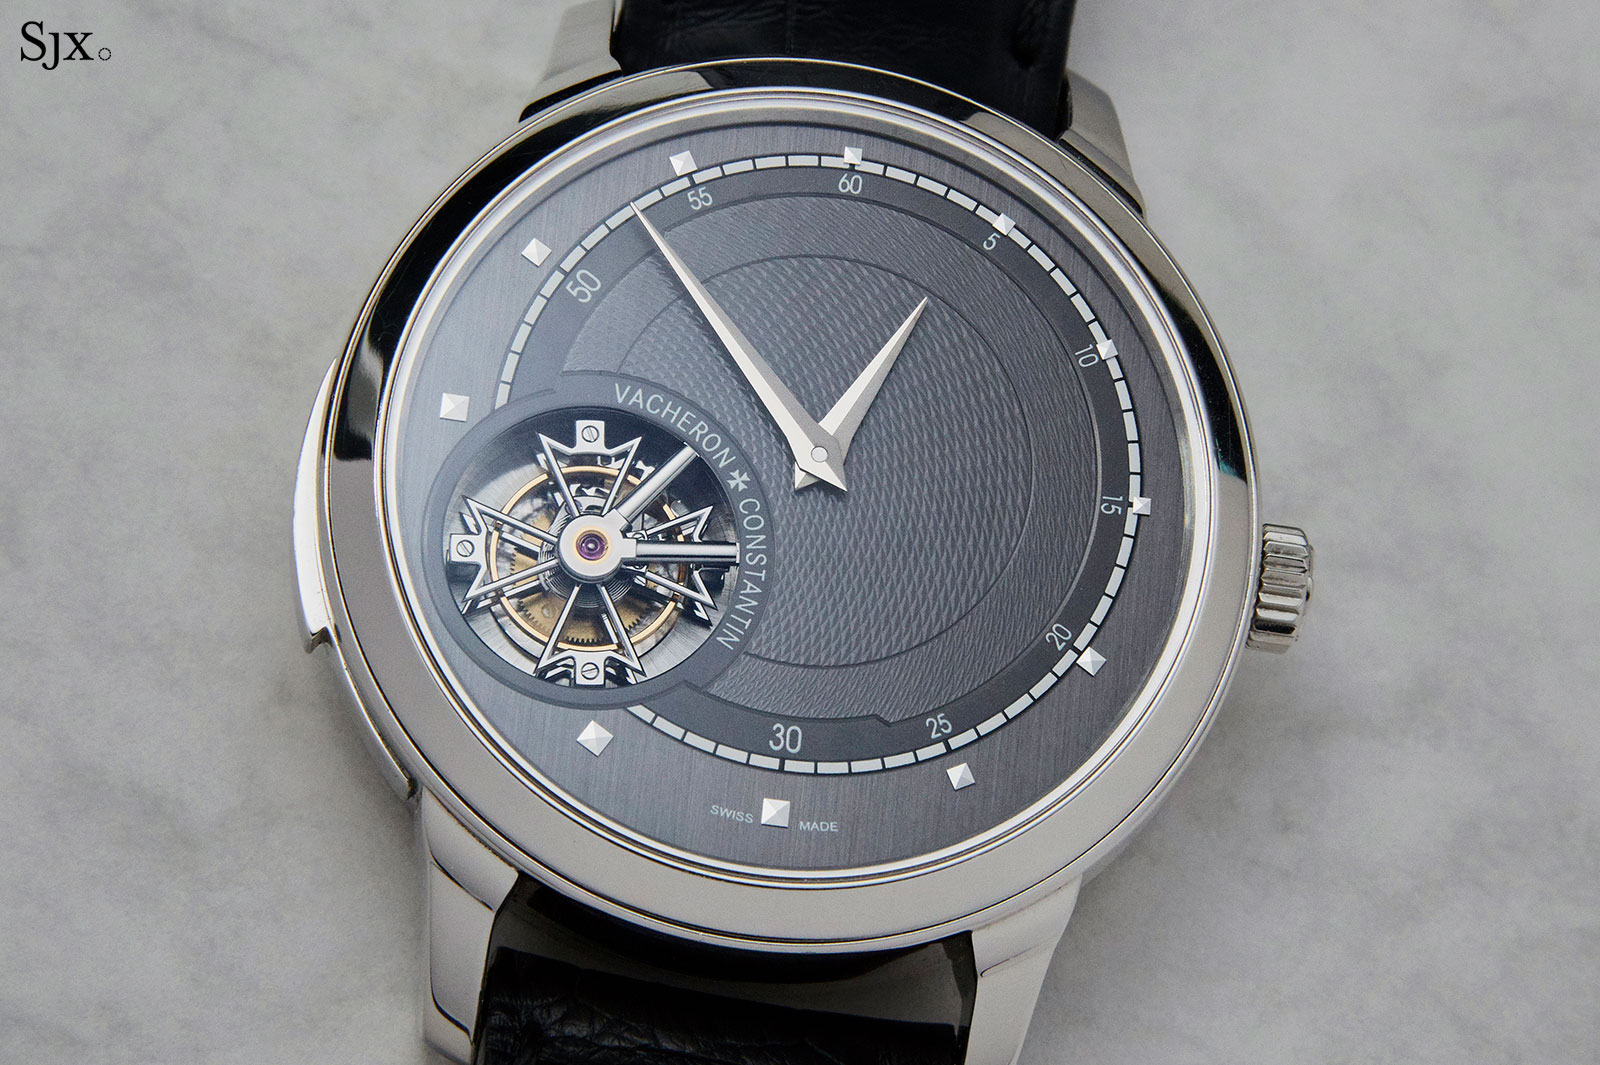 Vacheron Constantin Cabinotiers grand complication 30016-000P 11